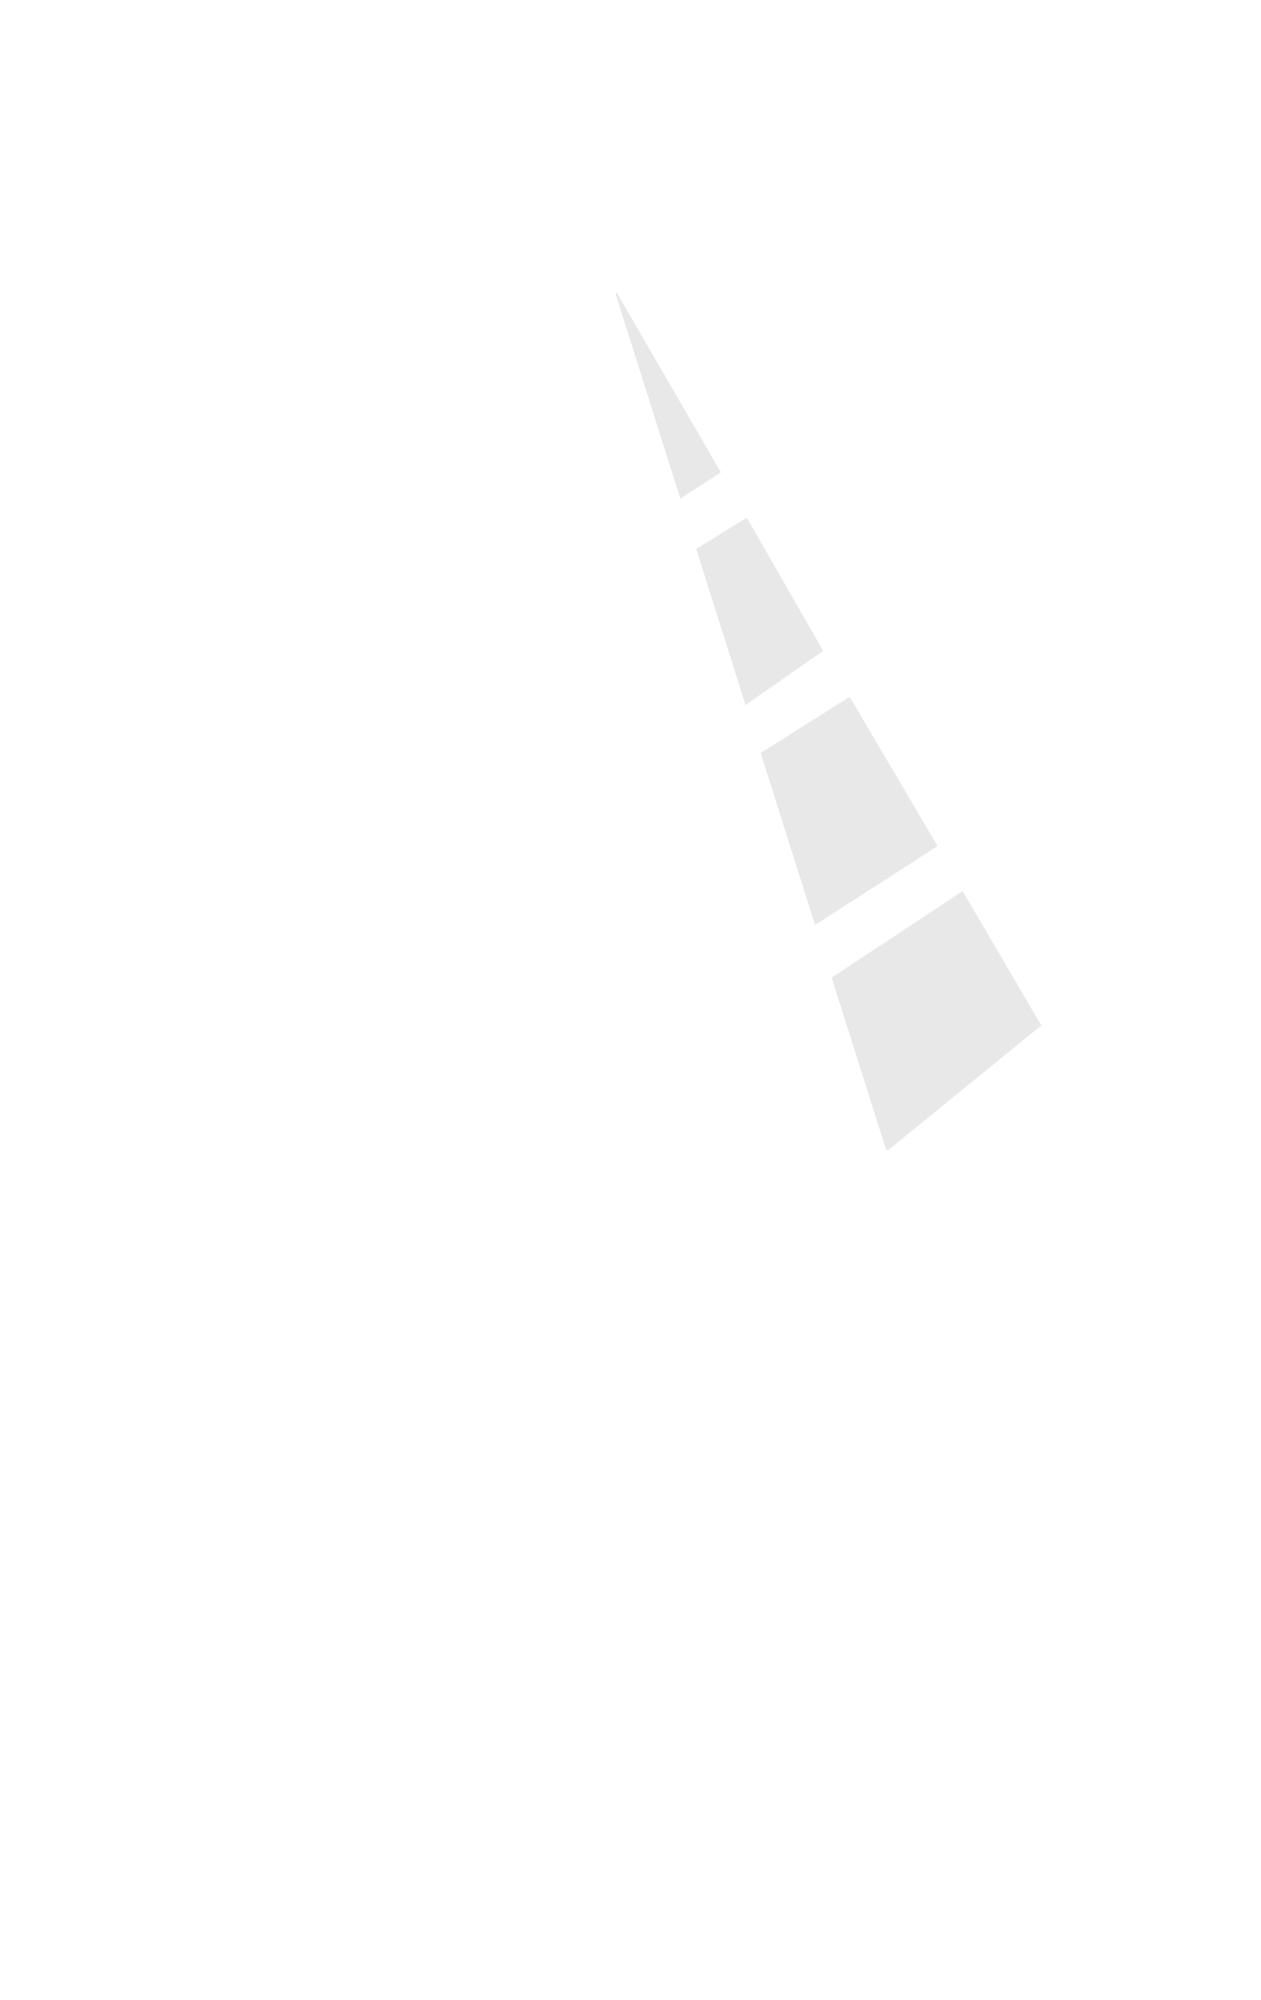 Customized HR Softwares